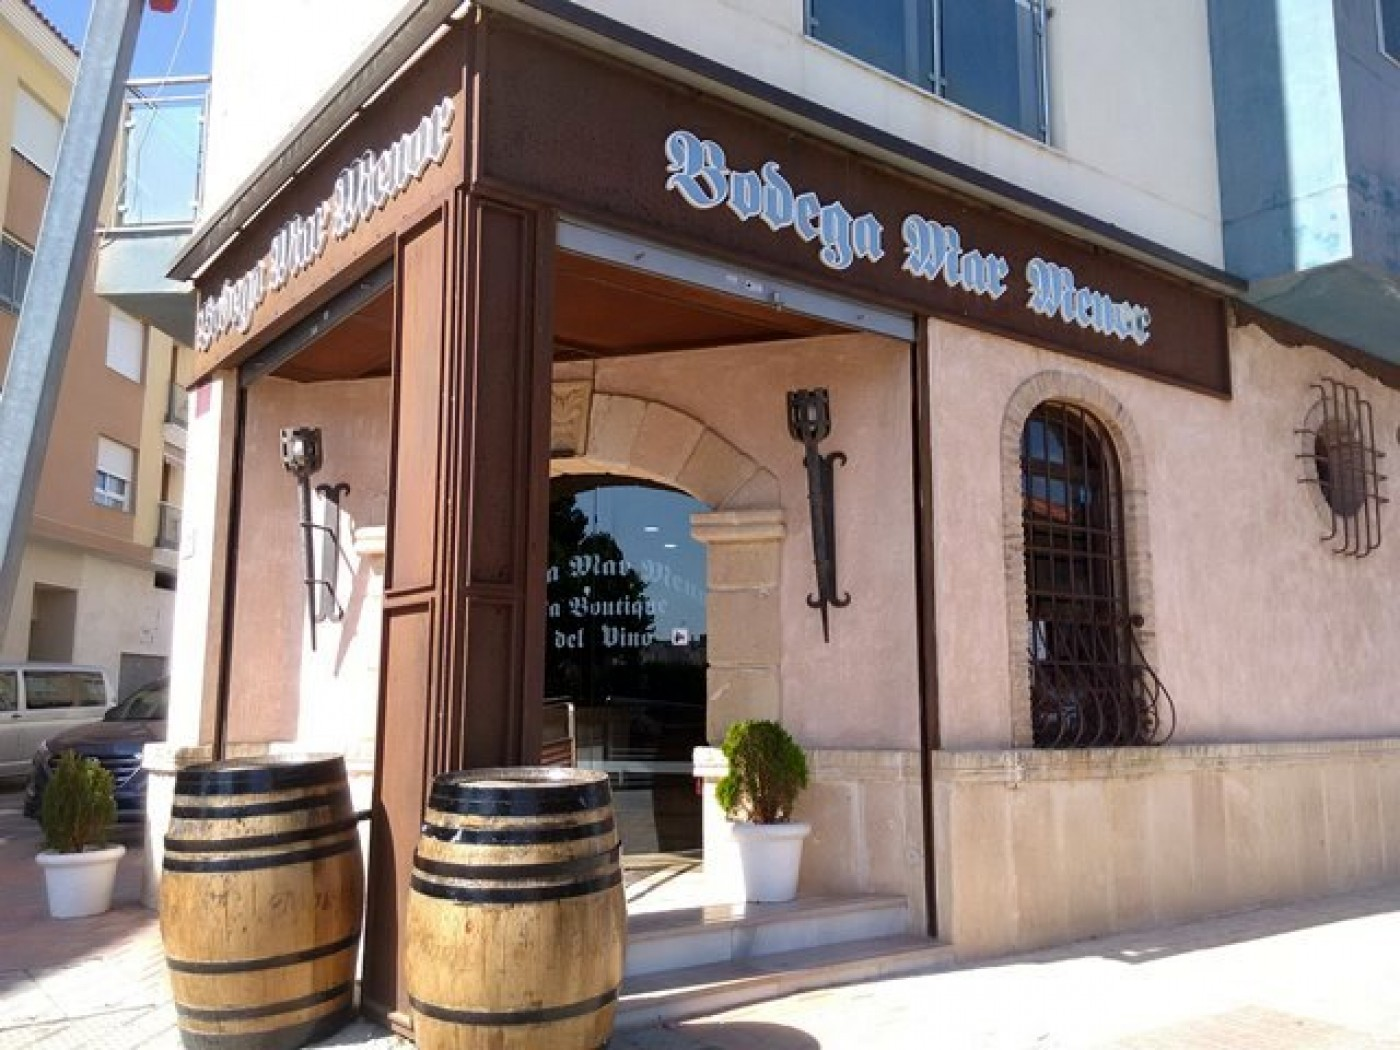 Bodega Mar Menor wine specialists in Torre Pacheco